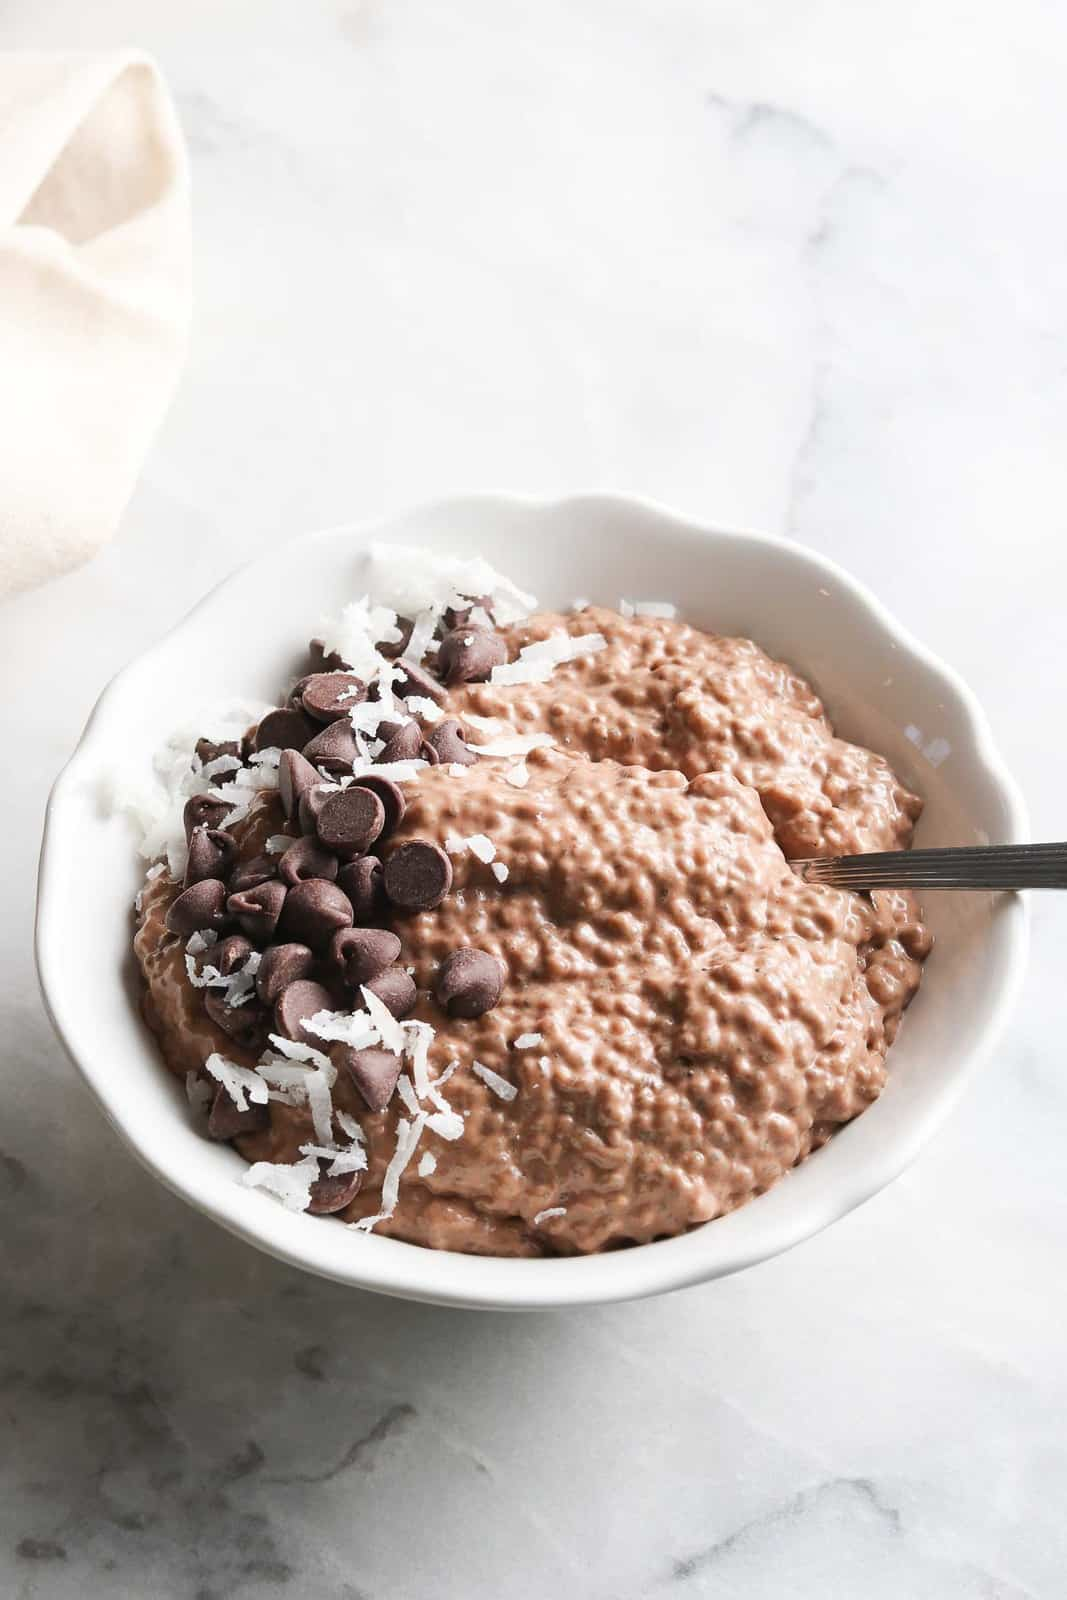 Bowl of vegan chocolate chia seed pudding with chocolate chips